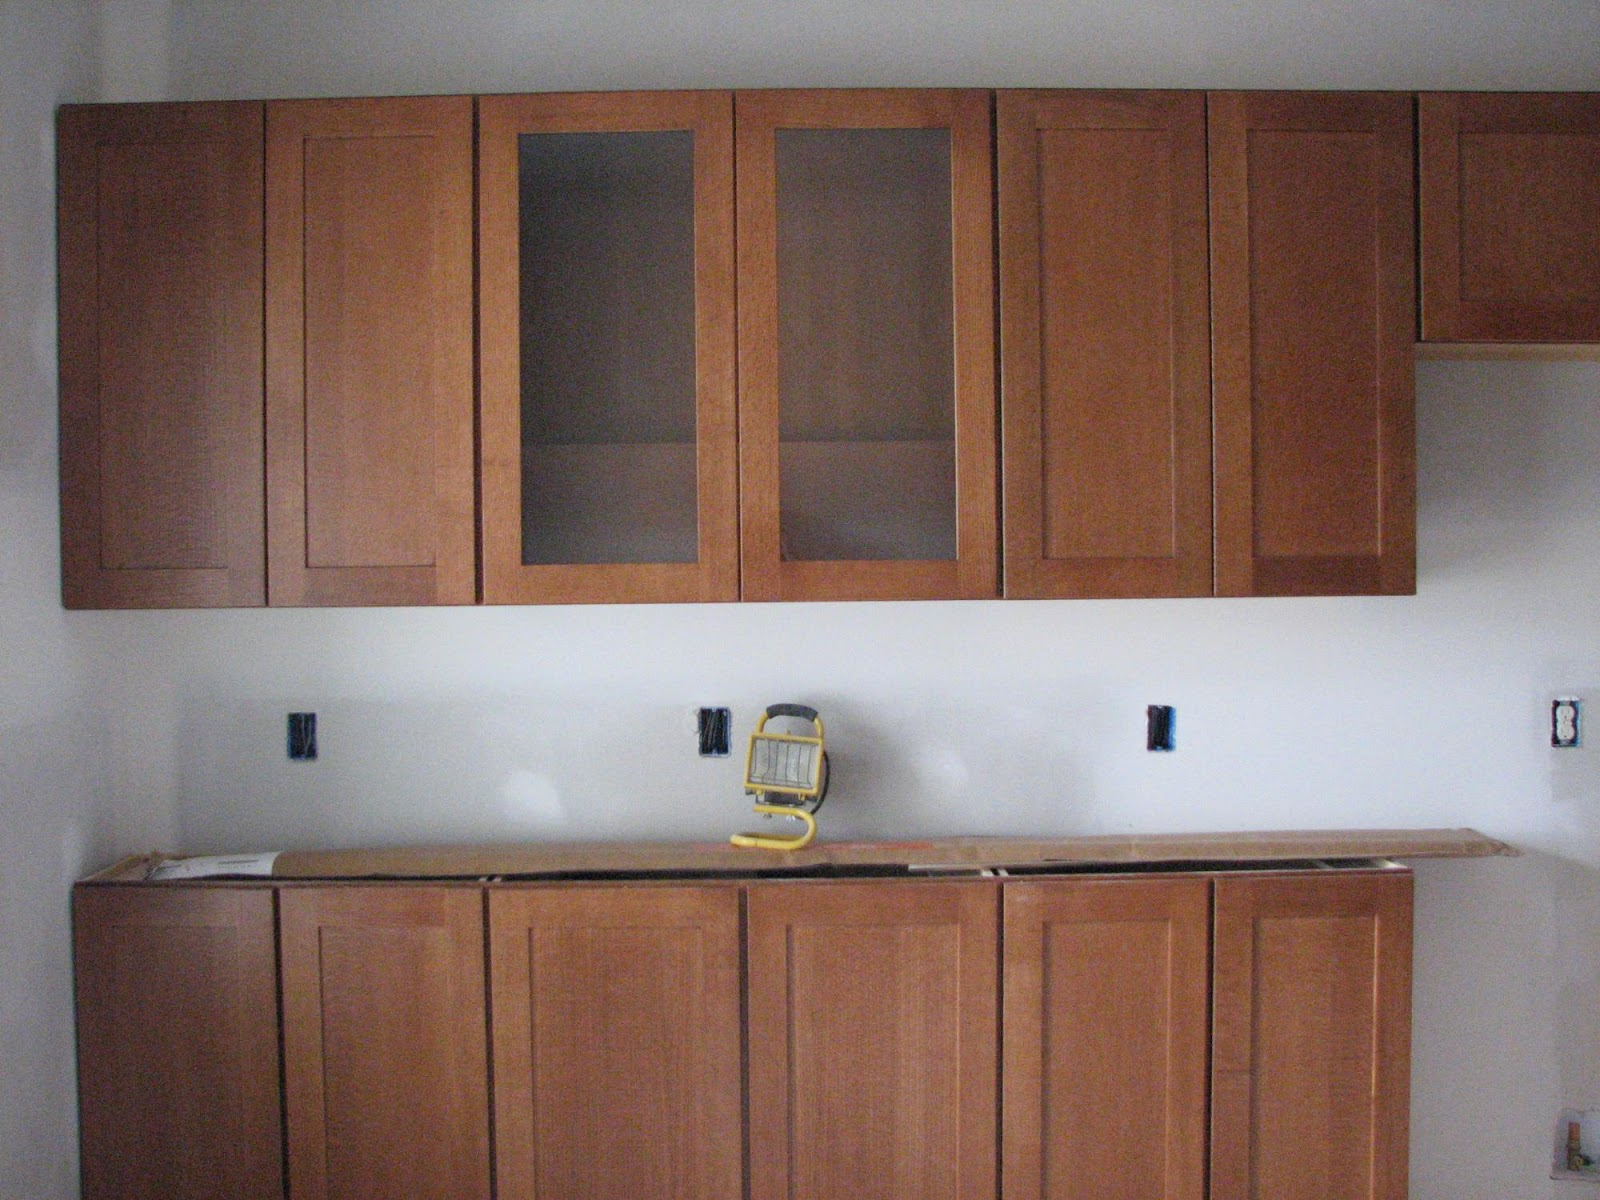 Measuring Kitchen Cabinets How To Measure Kitchen Cabinets In Linear Feet